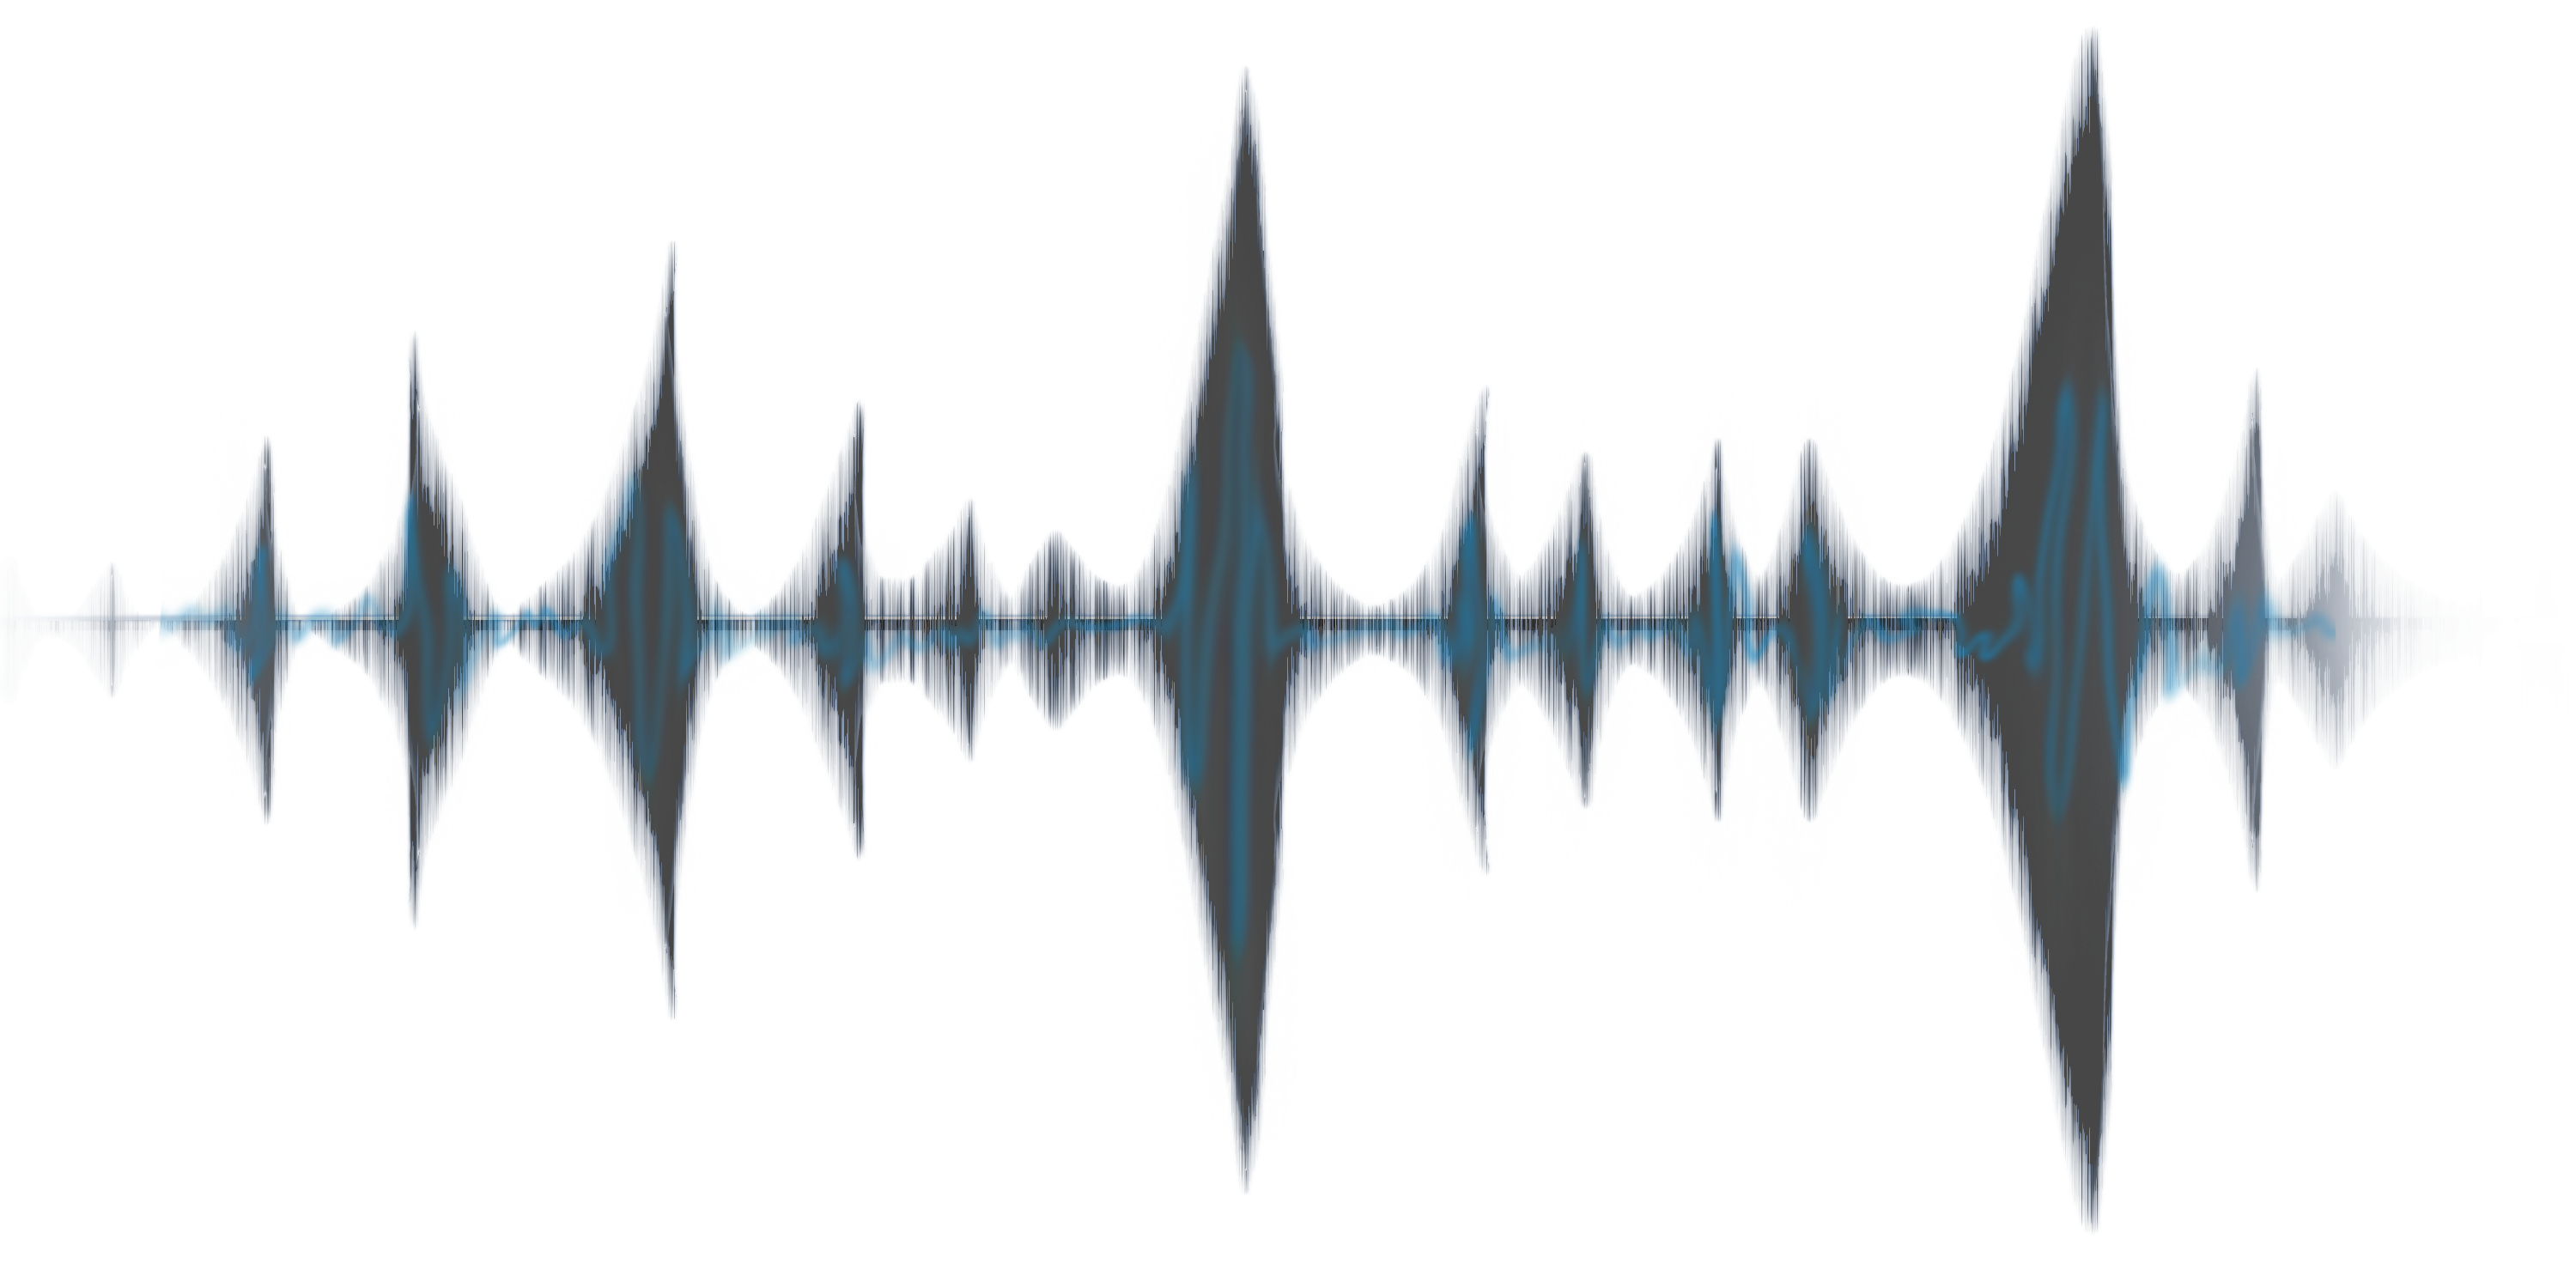 PNG Sound Waves - 86550